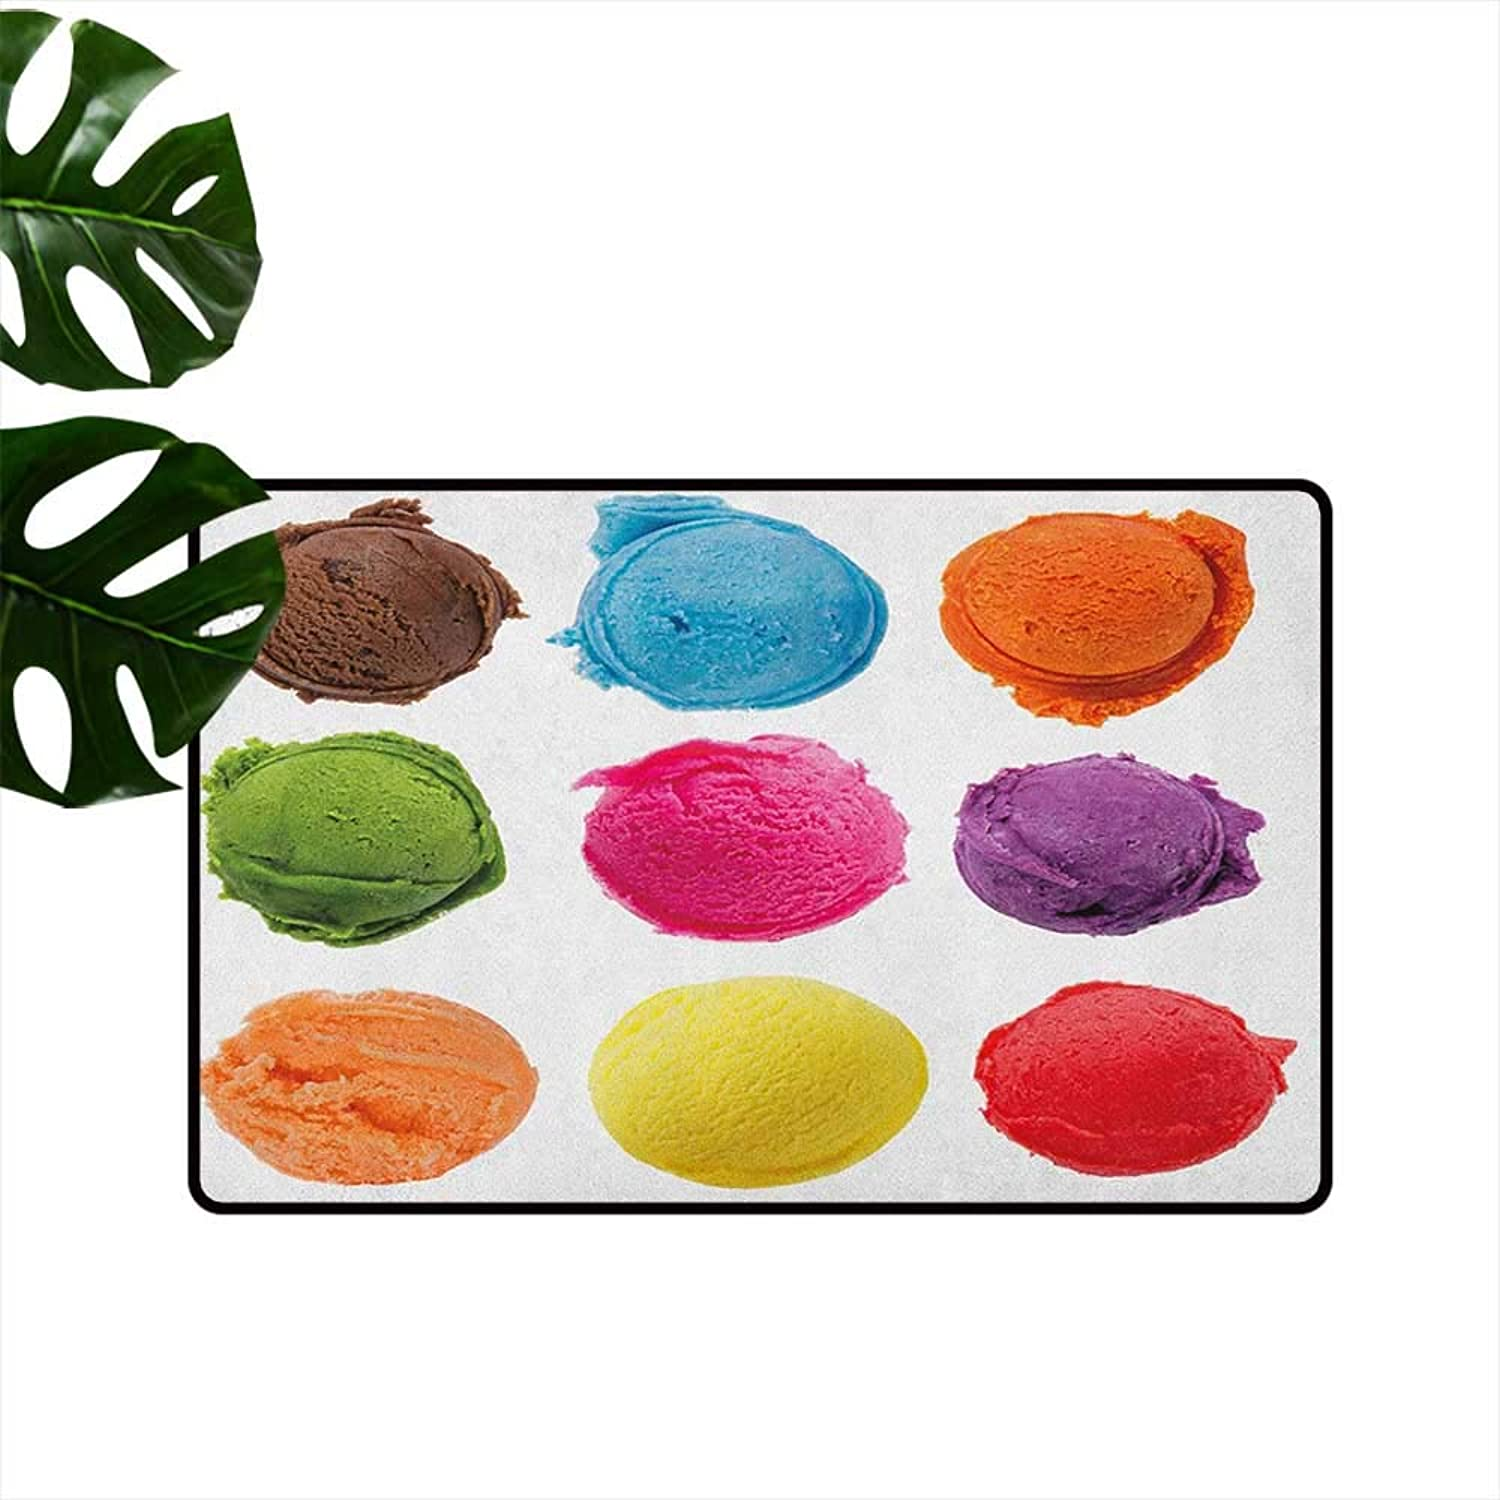 Ice Cream Entrance Door mat Ice Cream Toppings with colorful Various Flavor Yummy Sweet Summer Season Image Hard and wear Resistant W29 x L39 Multicolor